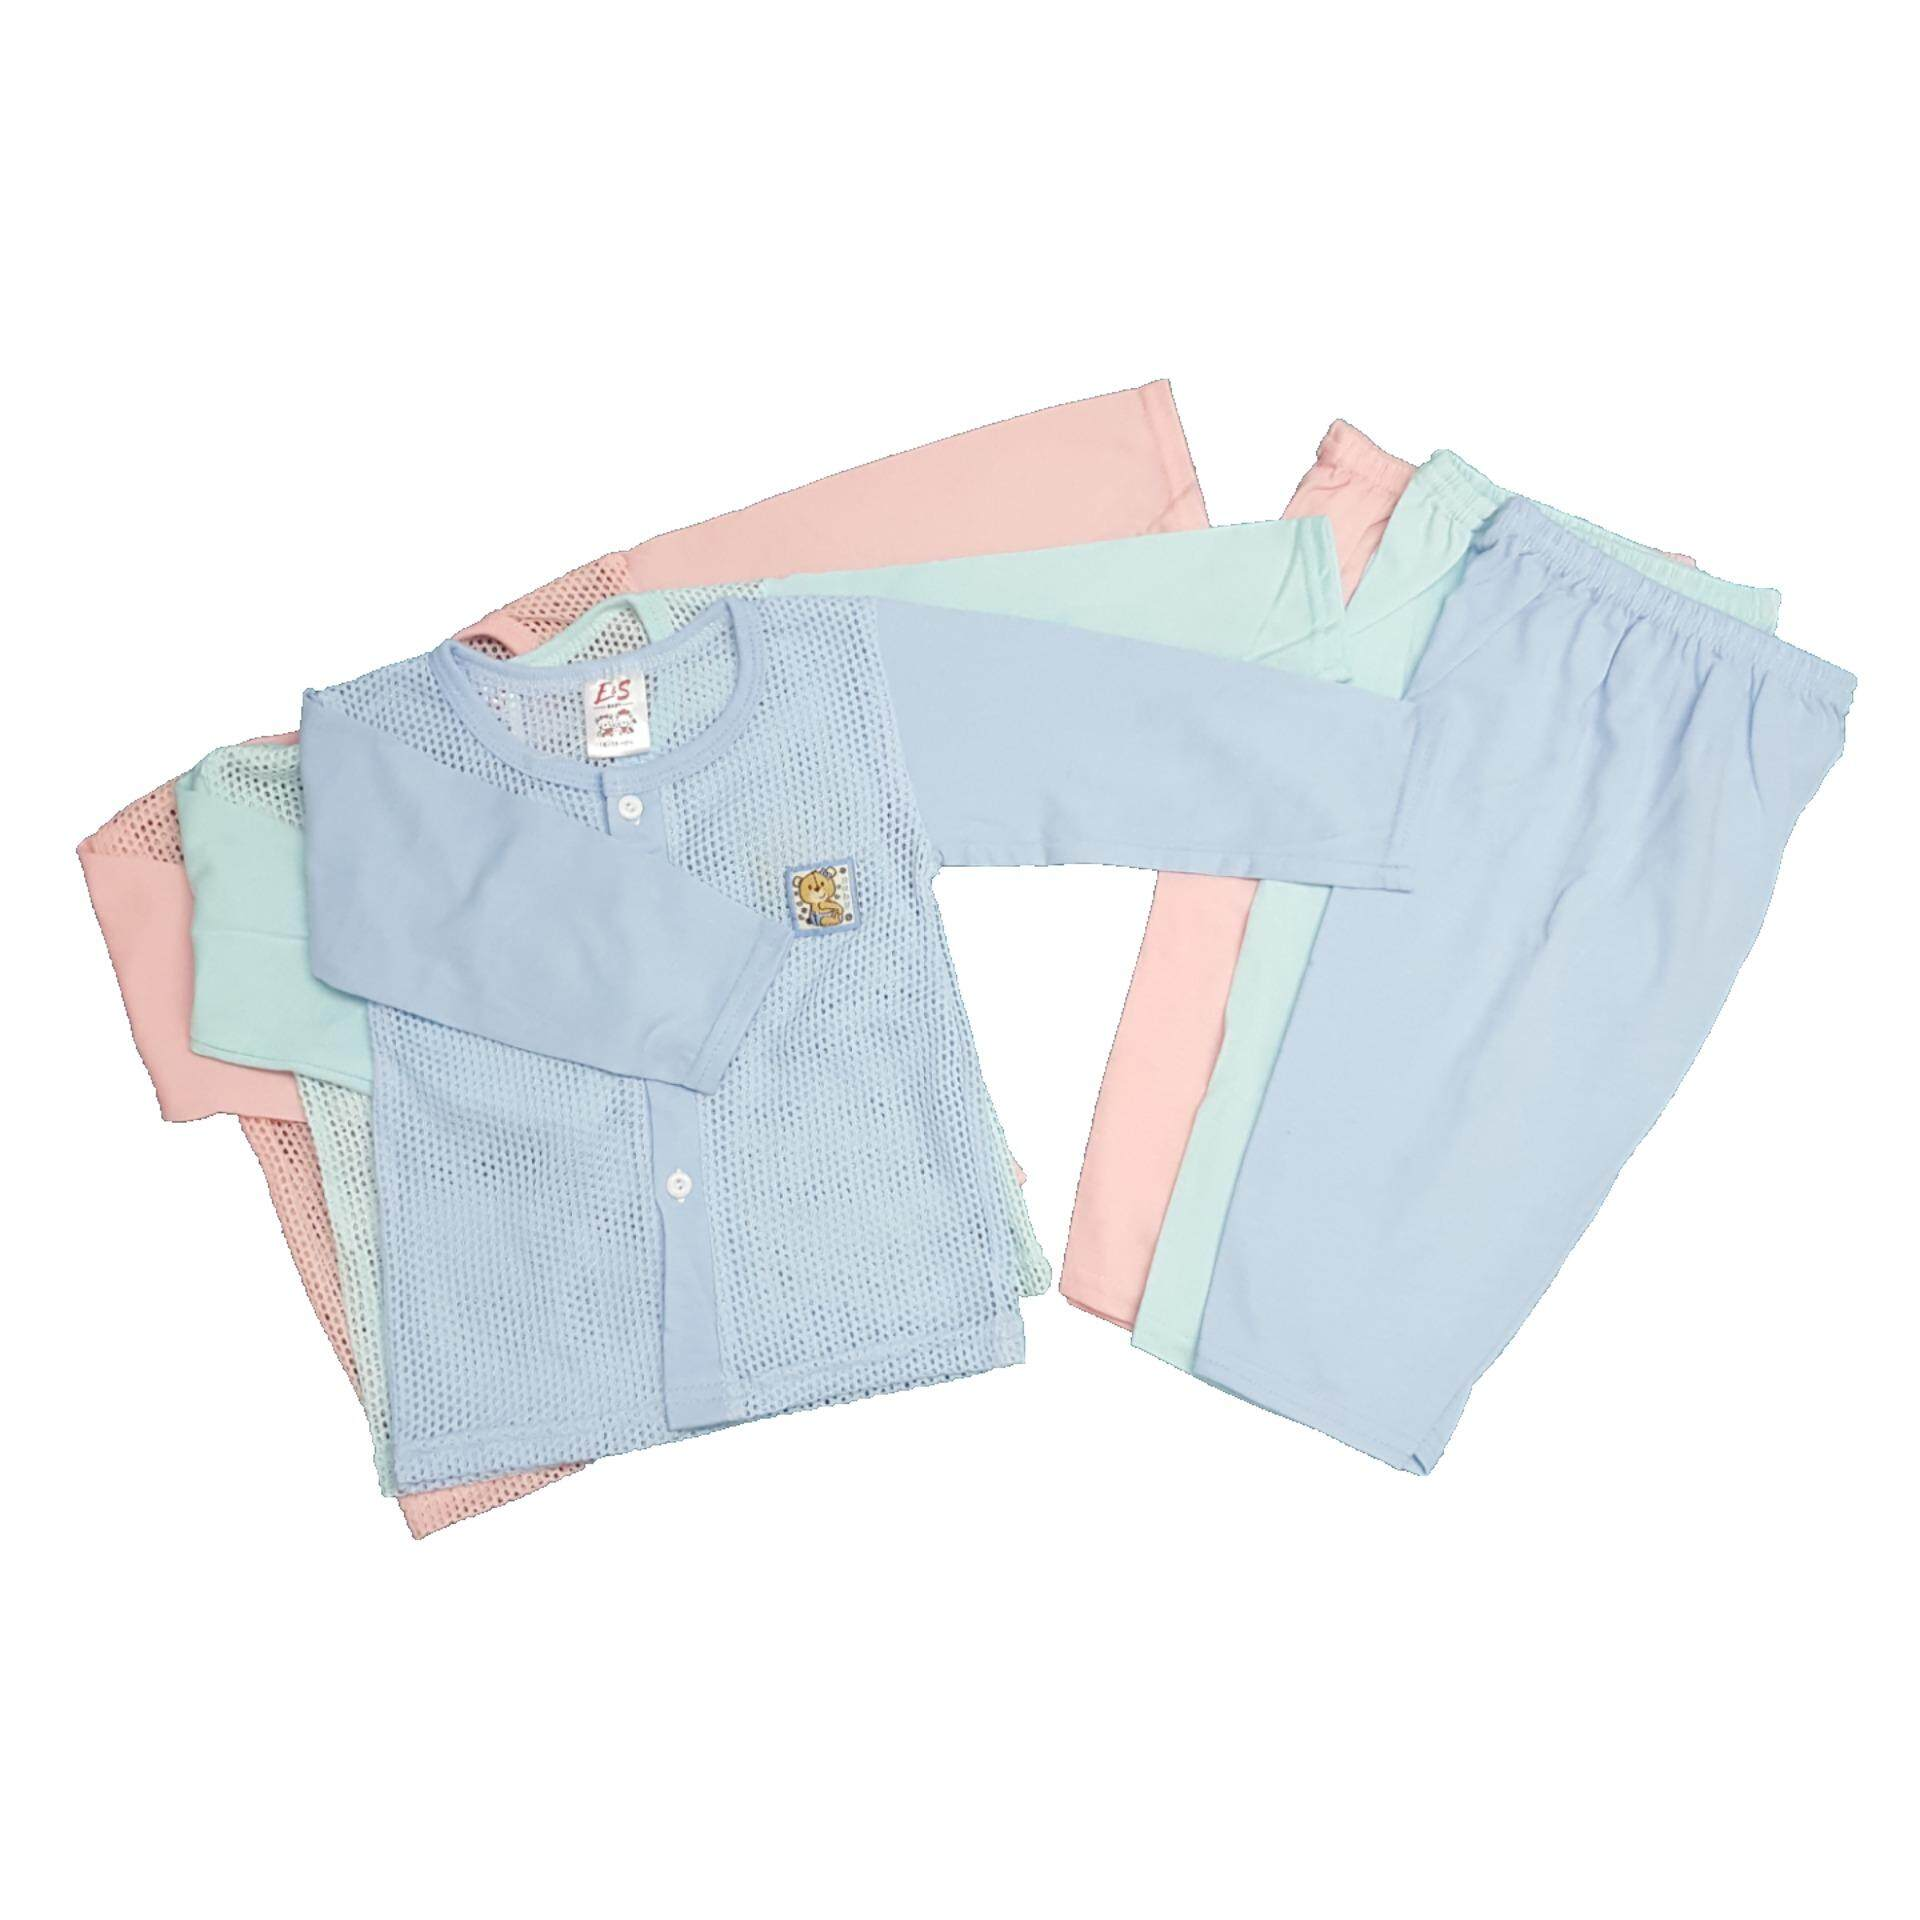 NewBorn & Baby 3 SET Eyelet Baby Pajamas (Fit to Age: 6-18Mth Mass:8-12kg Height:69-80CM)